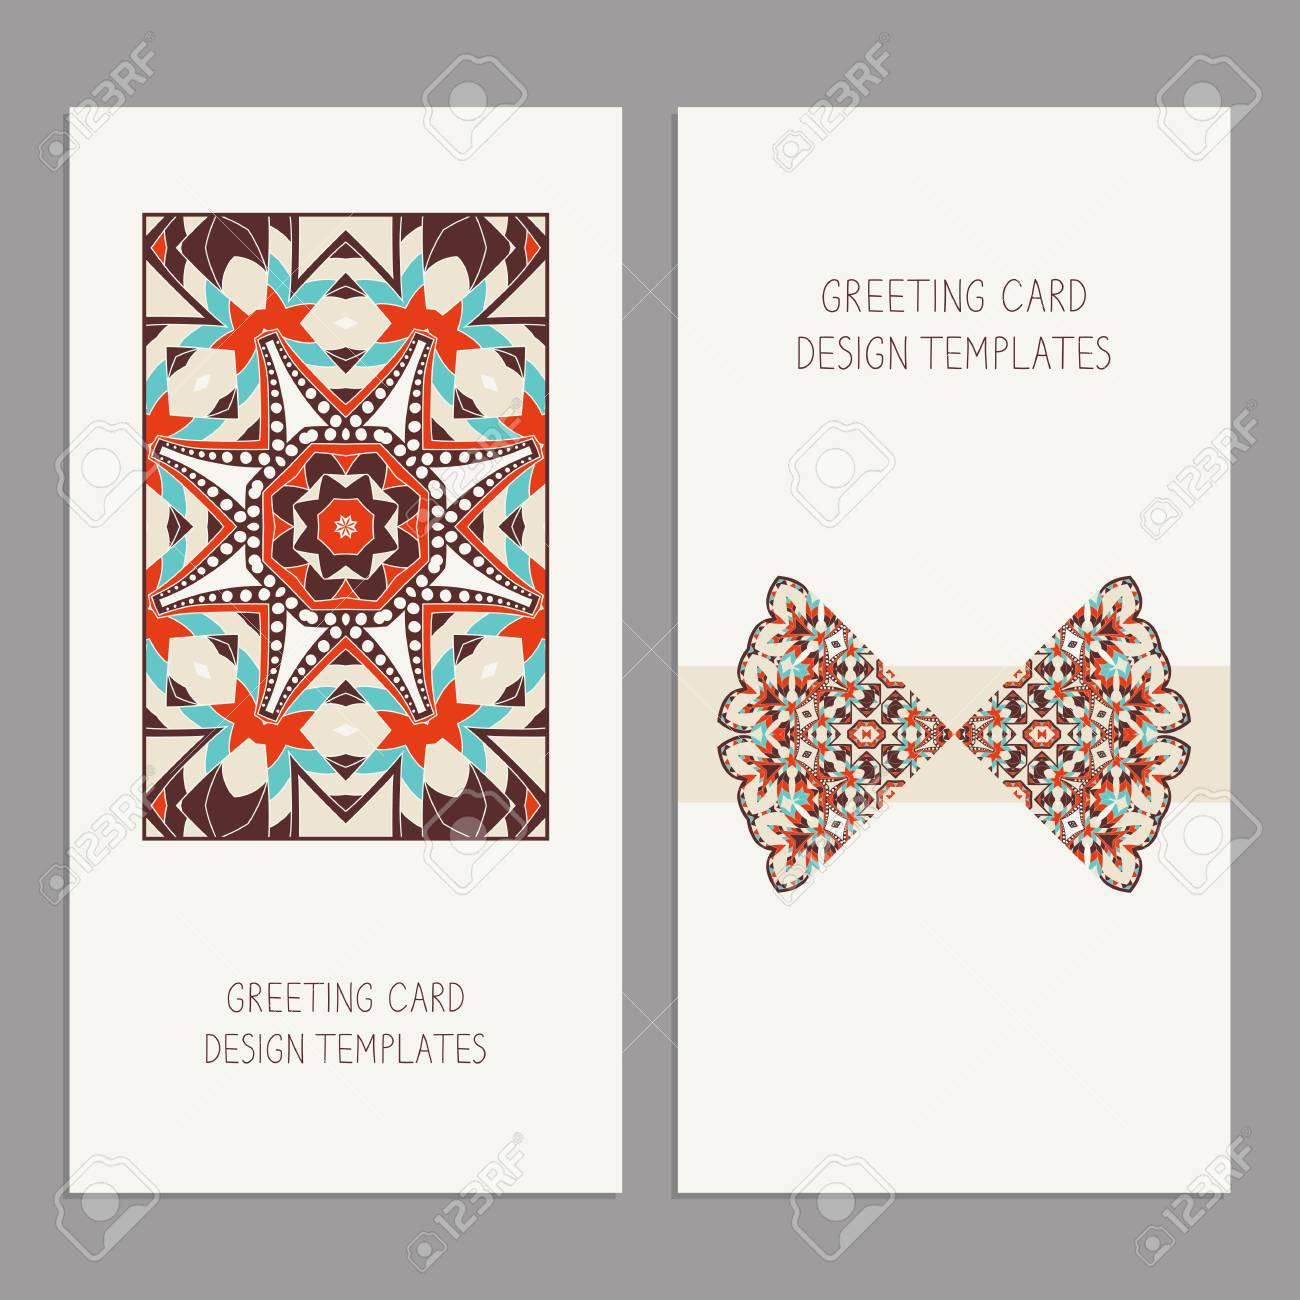 Templates For Greeting And Business Cards, Brochures, Covers ...